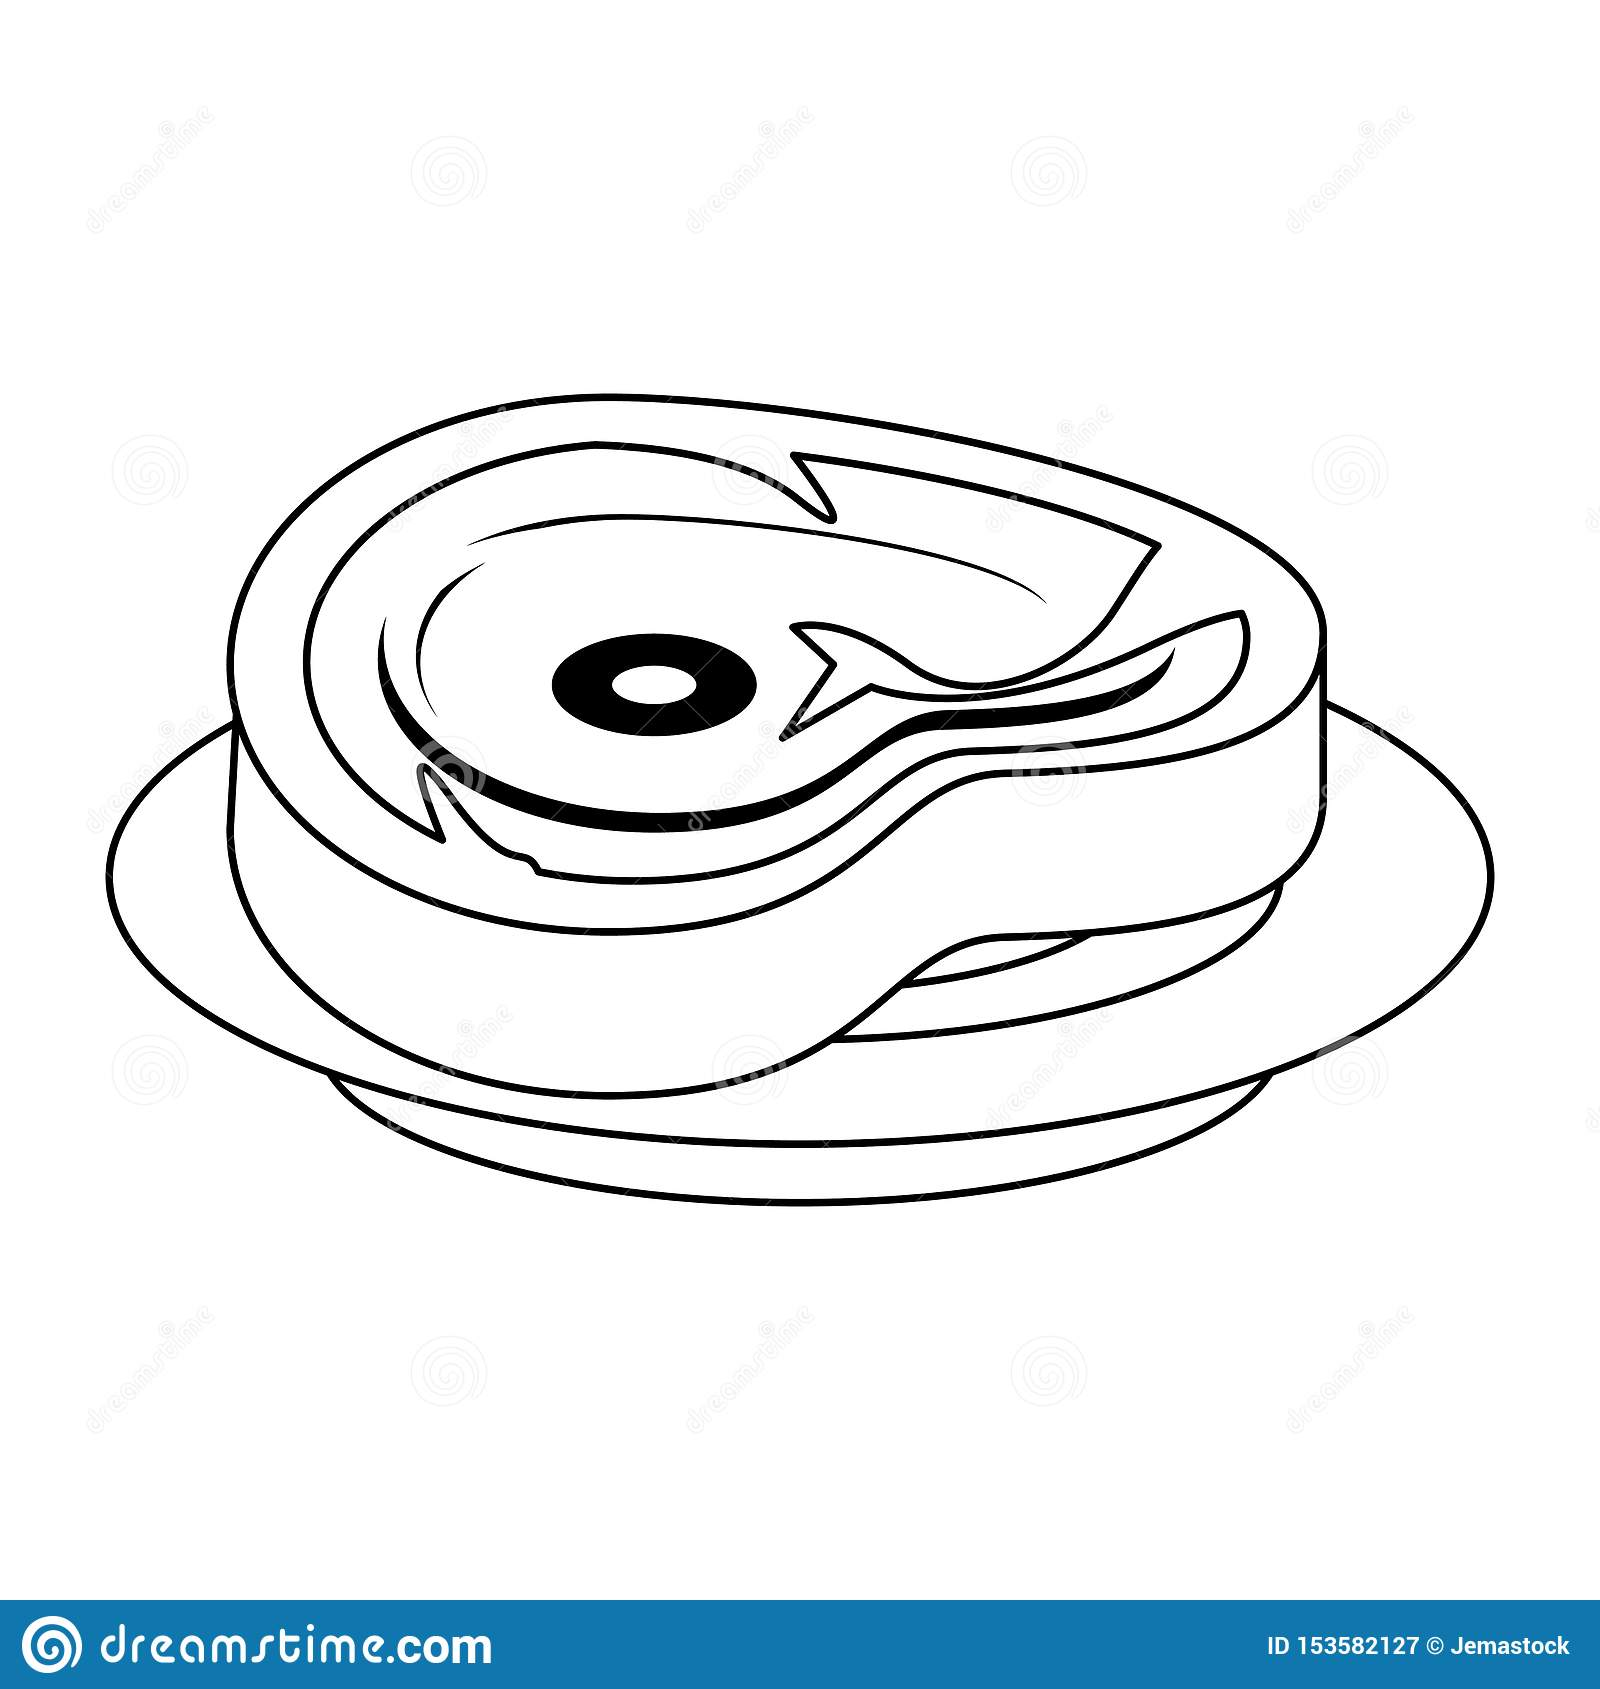 barbecue beef cut of meat food isolated in black and white stock vector illustration of restaurant roasted 153582127 https www dreamstime com barbecue beef cut meat food isolated vector illustration graphic design barbecue beef cut meat food isolated black image153582127